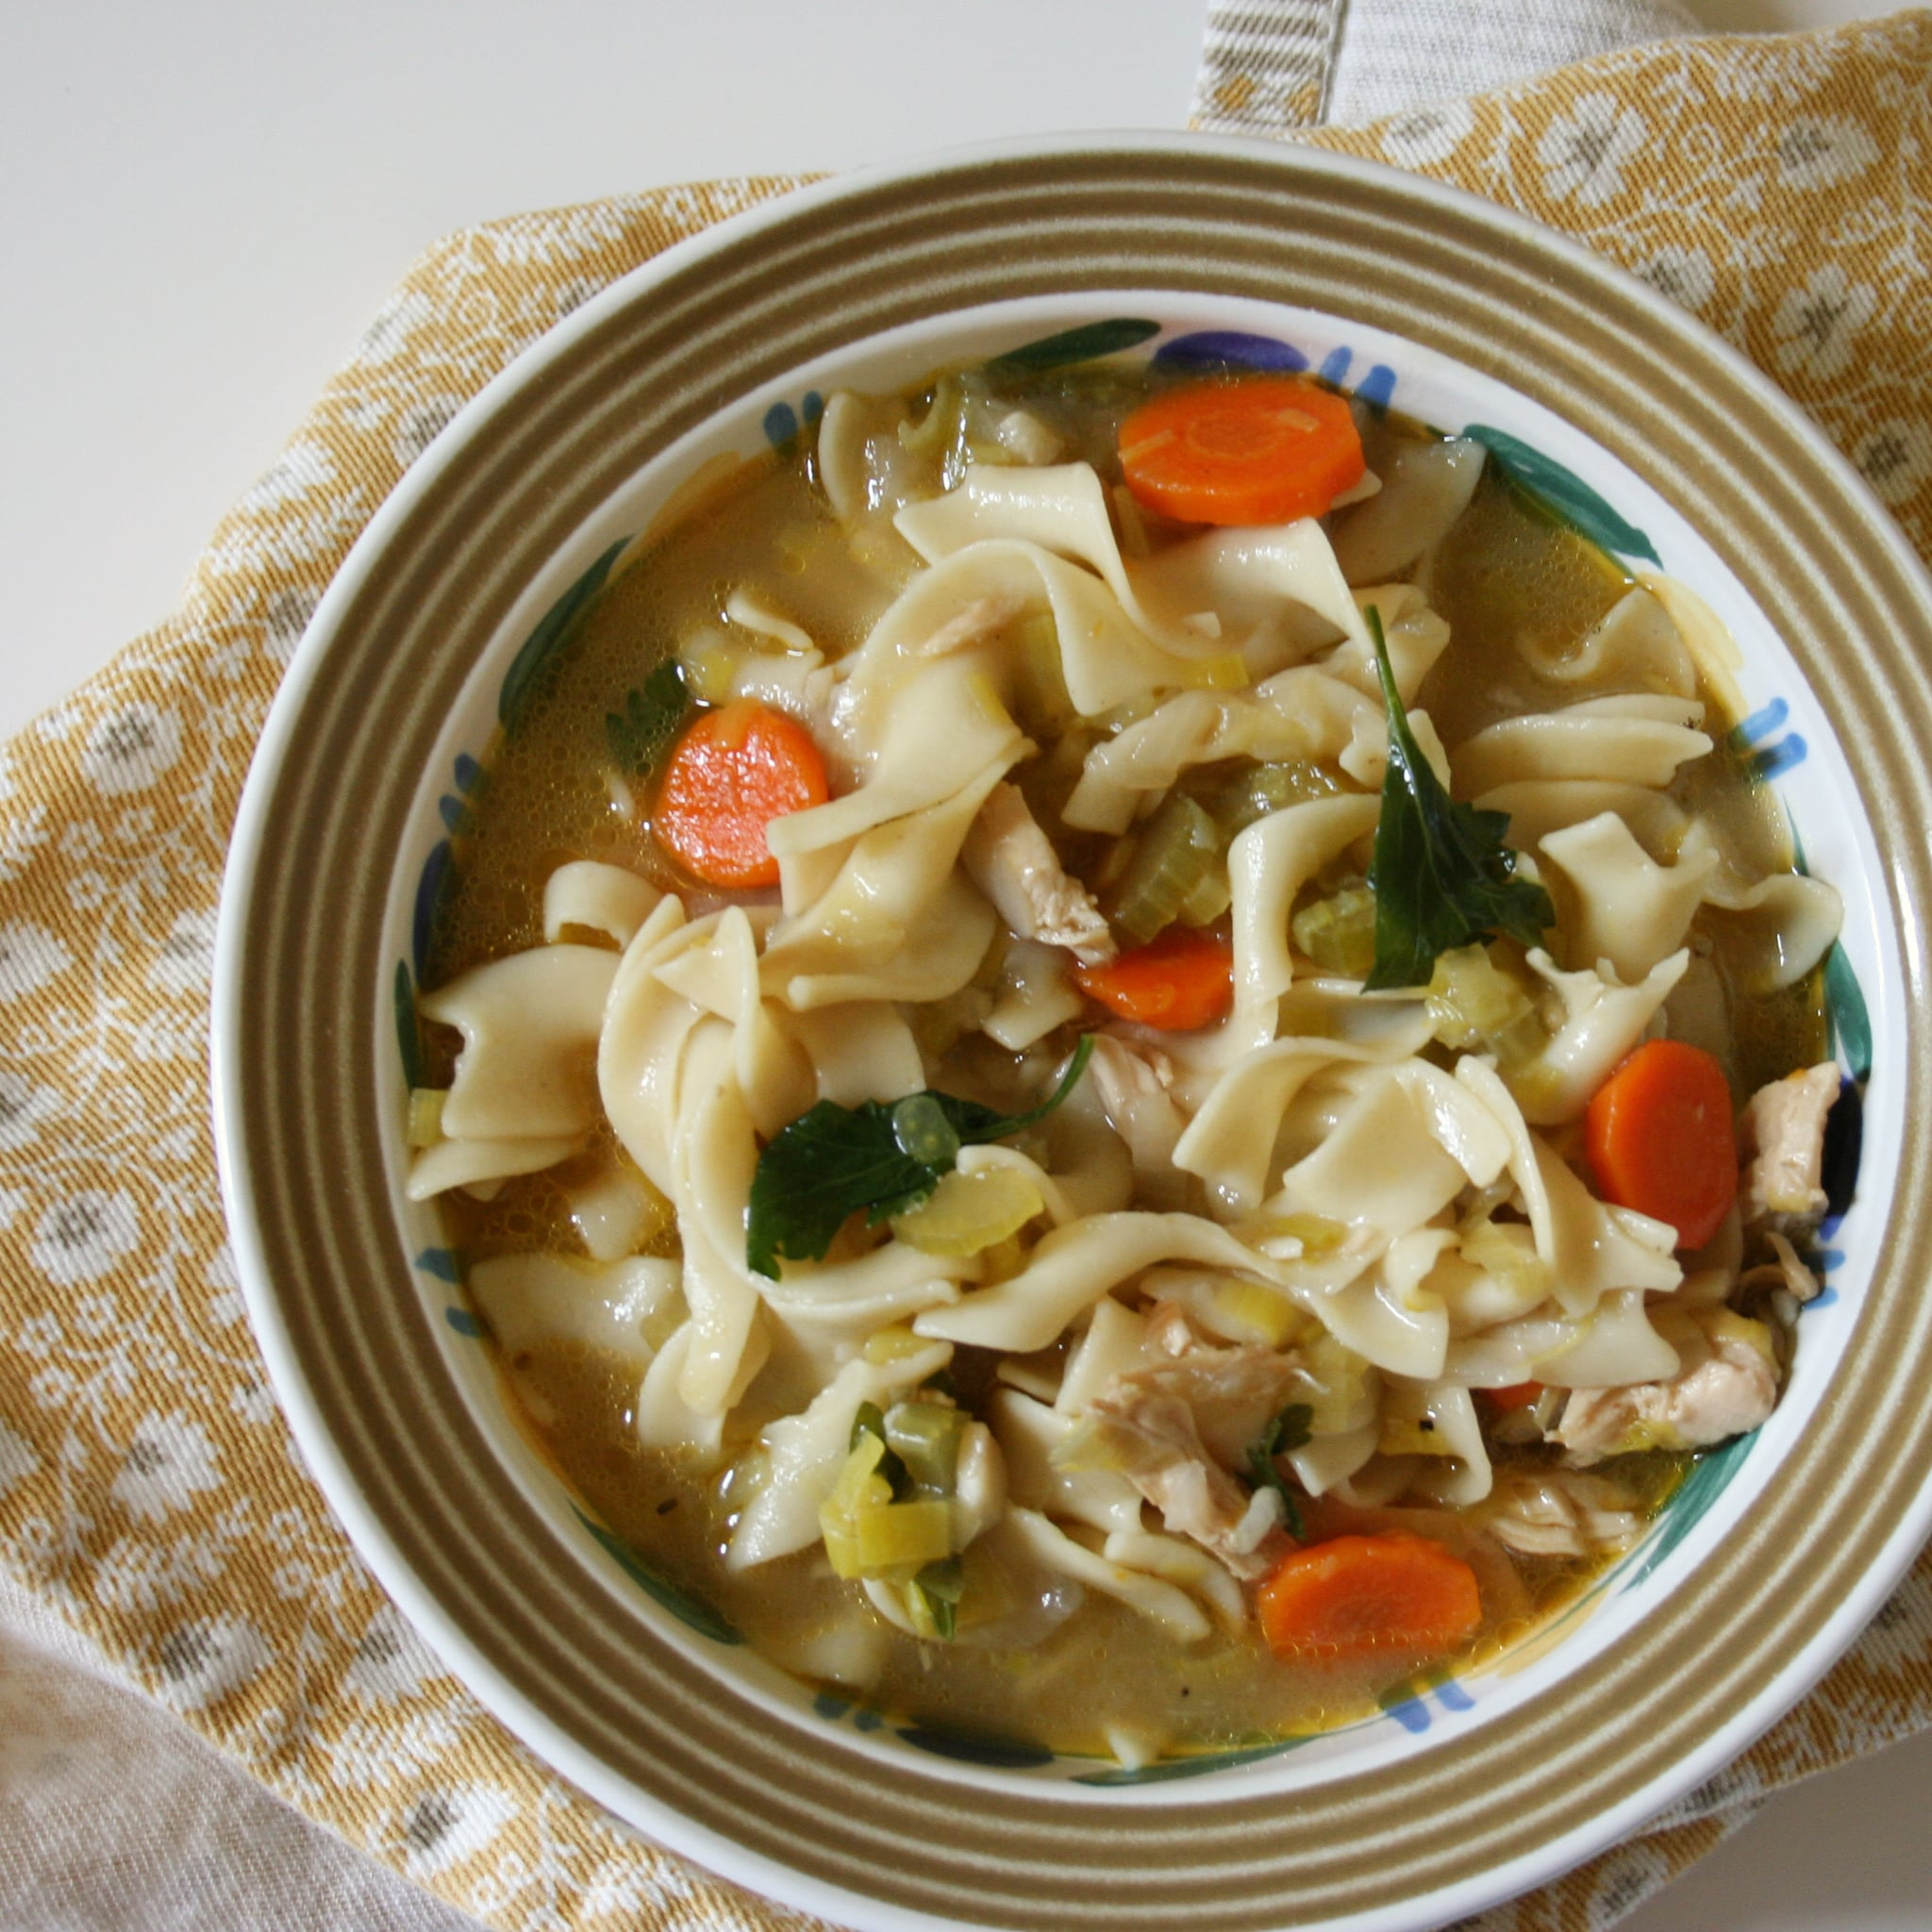 Popsugar Food: Food Network Chicken Noodle Soup Recipes